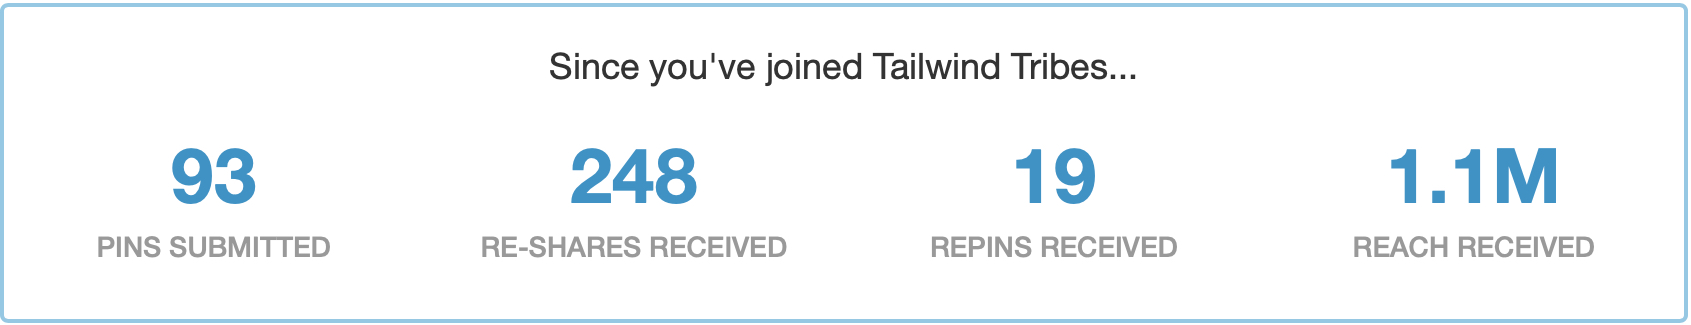 reach on pinterest from tailwind tribes